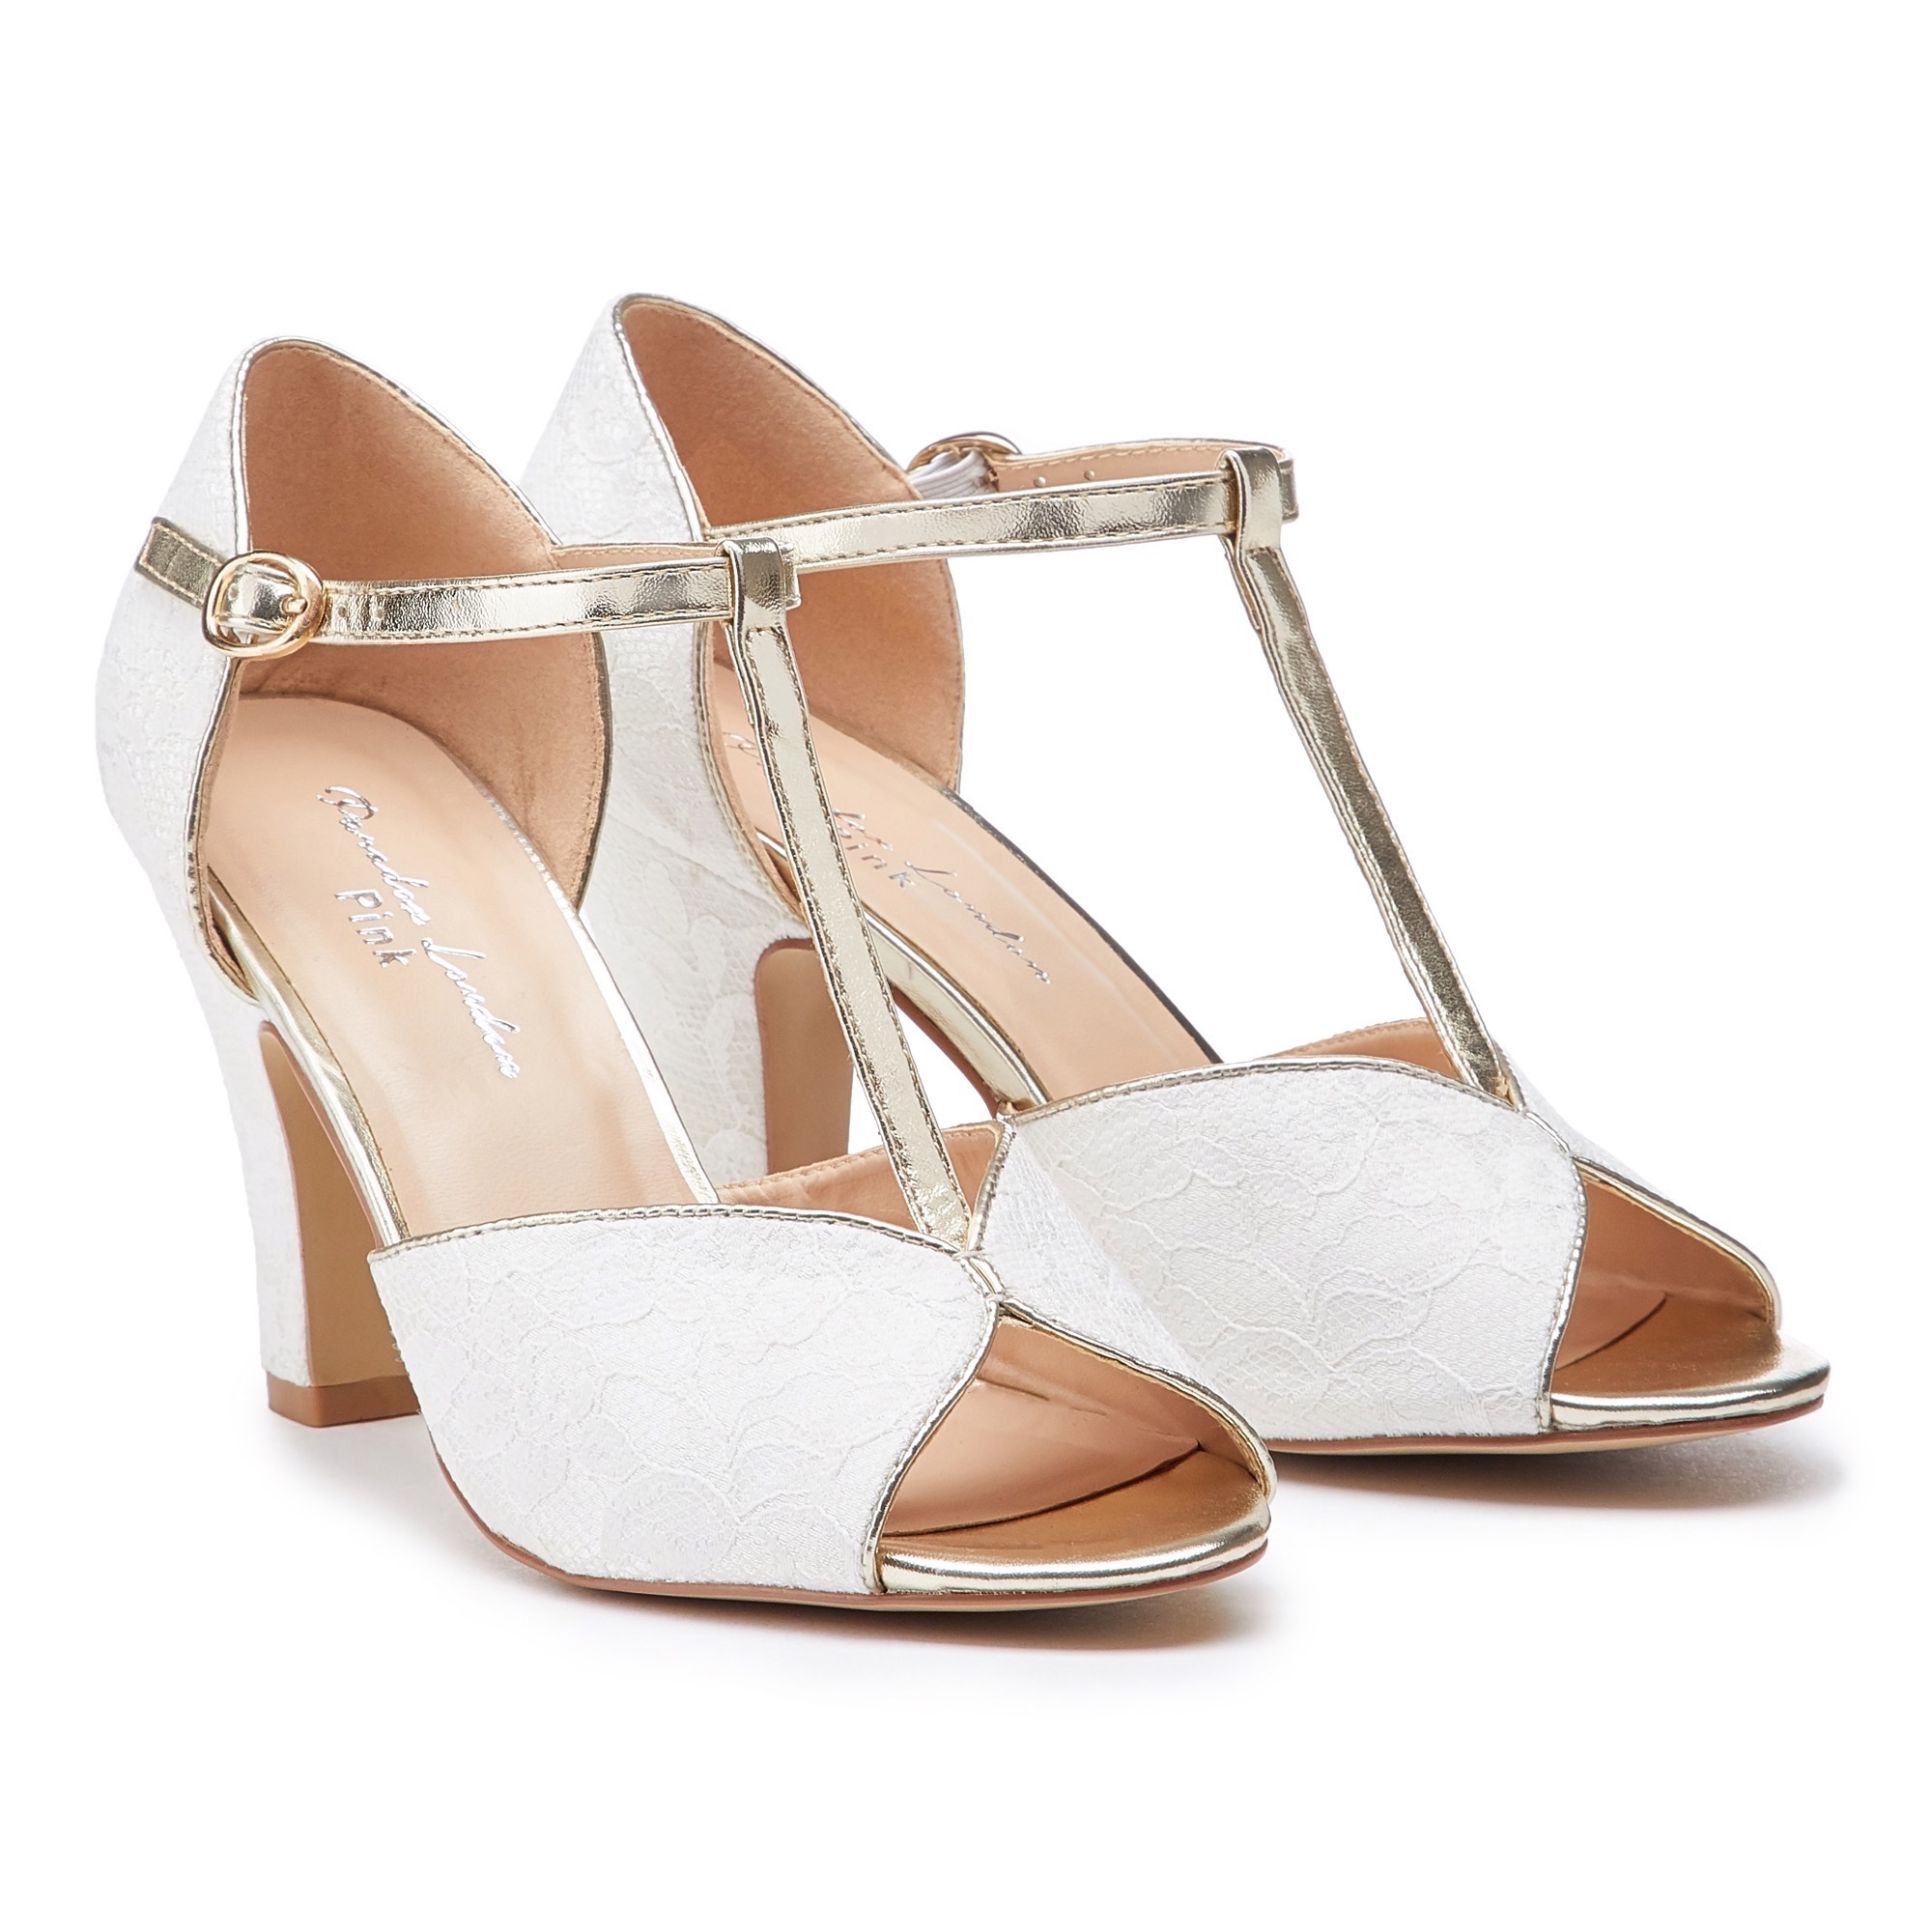 a648de061d Pink Paradox Quentin - Ivory Non-Dyeable Satin and Lace Peeptoe Heels